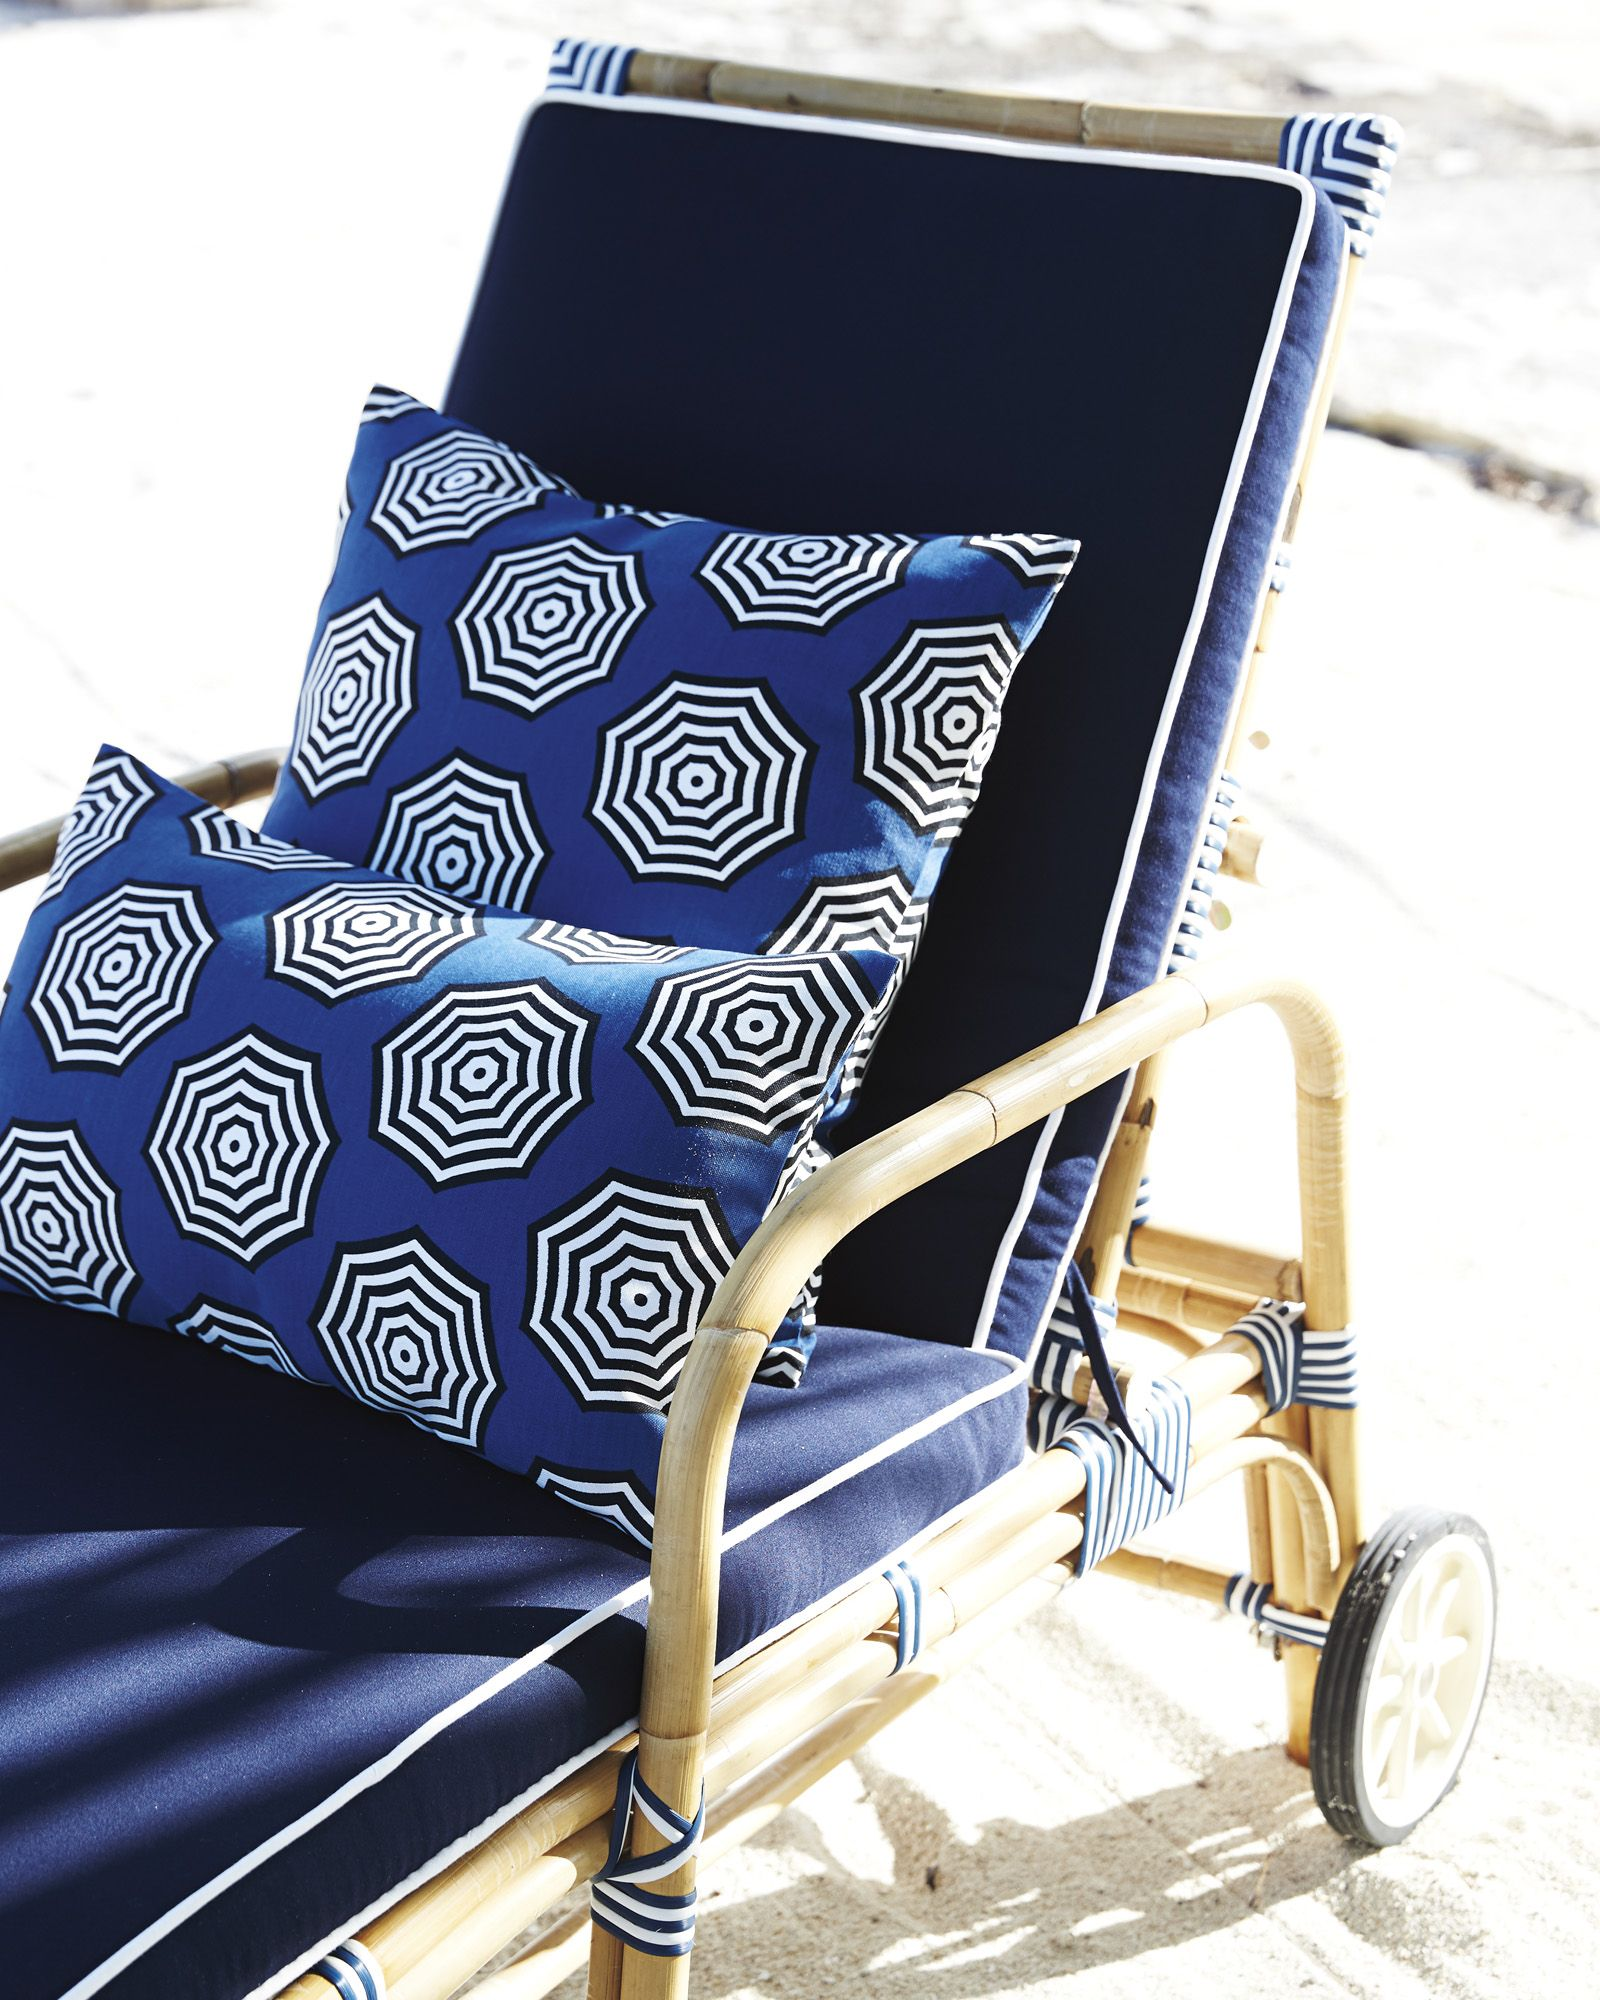 Love the rattan chaise add a blue cushion with white piping for a